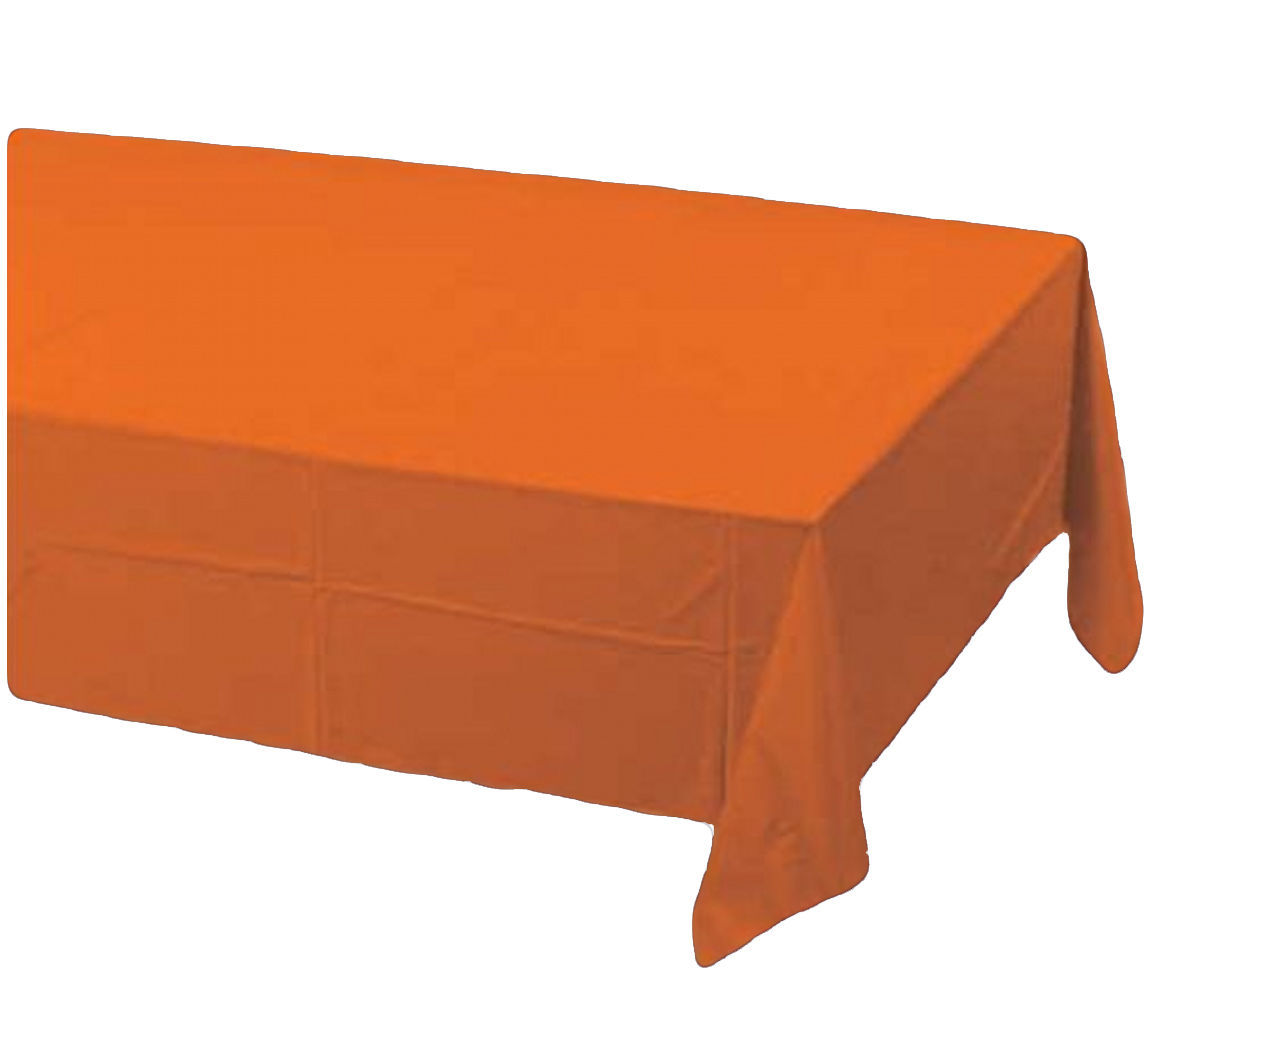 2 Creative Converting Paper - plastic lined  Banquet Table Covers - Orange